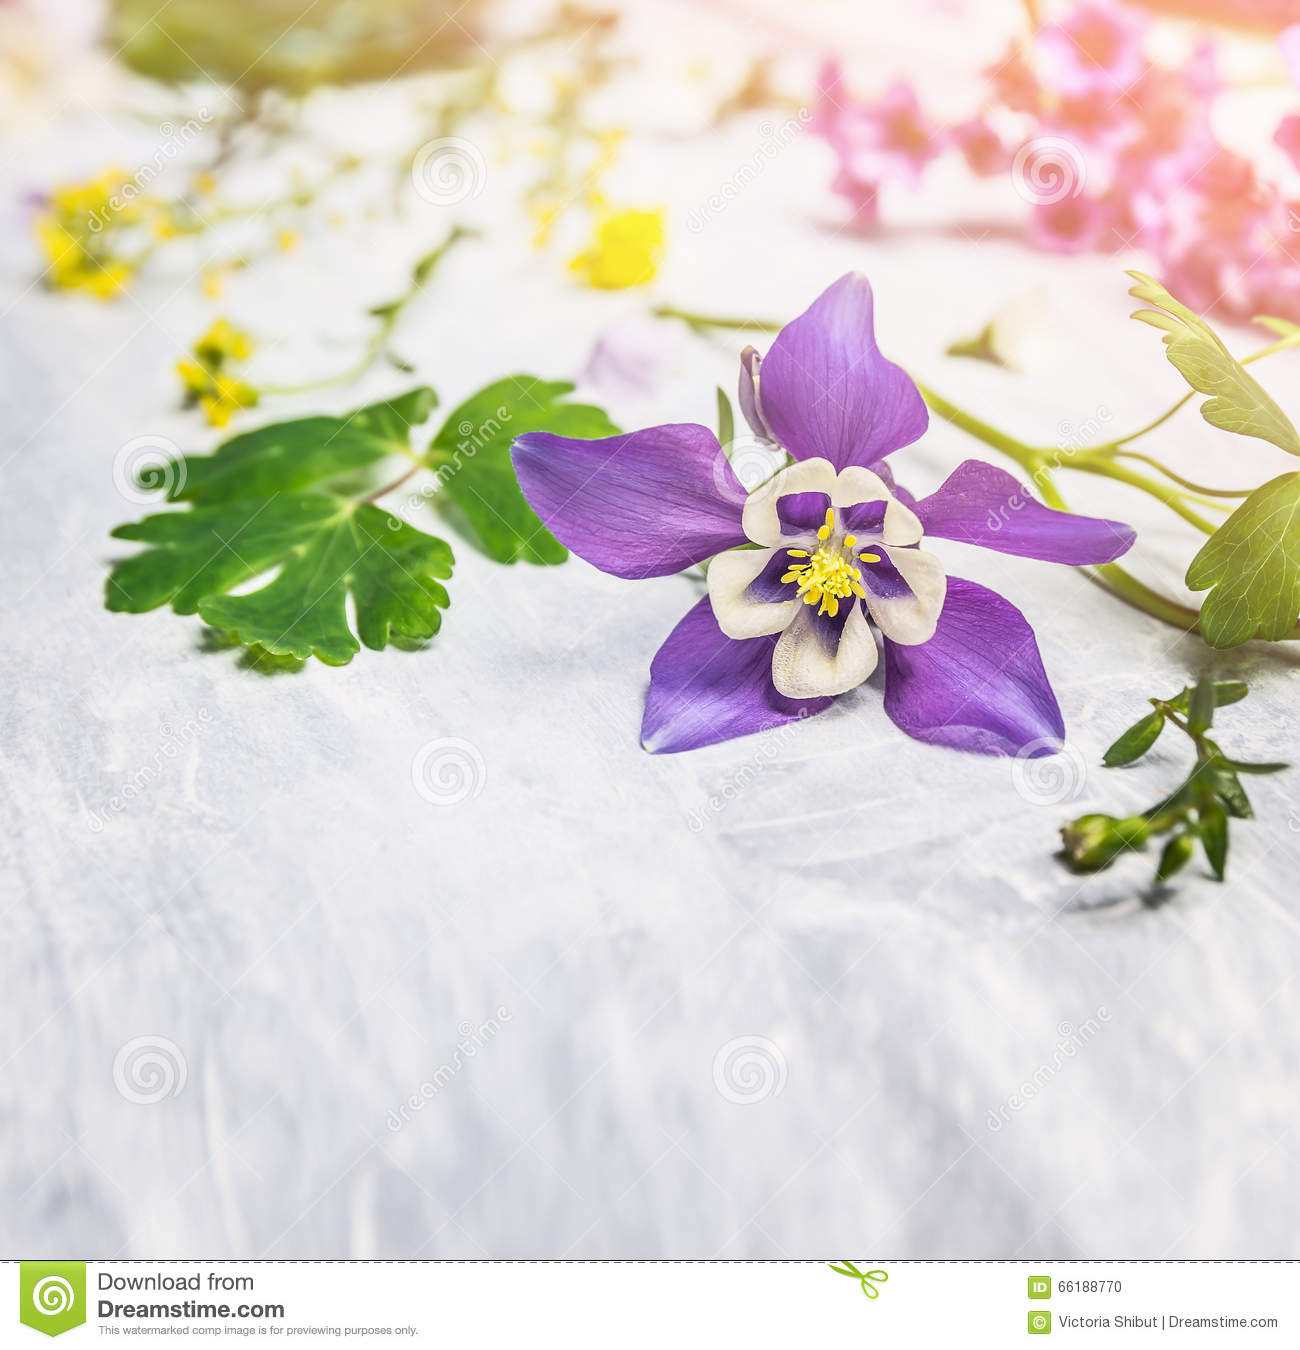 Plants for spring and summer - Spring Or Summer Flowers And Plants On Light Wooden Background